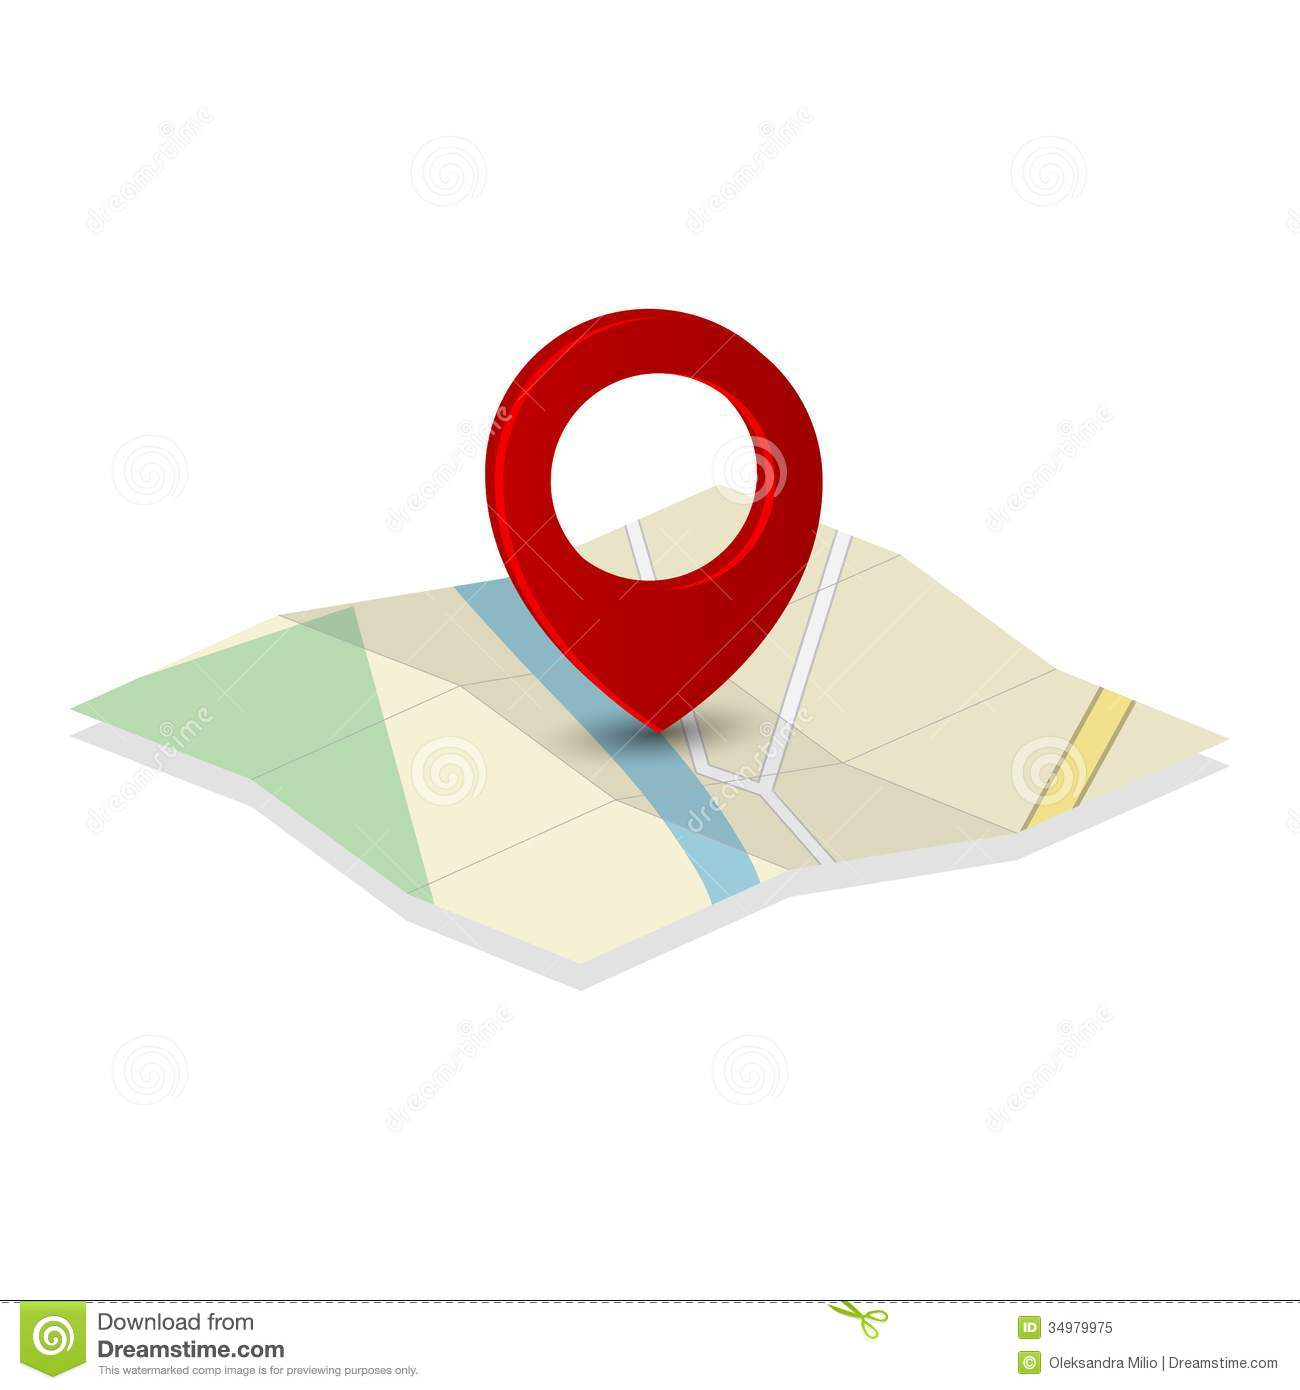 google map pin icon with Royalty Free Stock Photo Map Icon Pin Pointer File Eps Format Image34979975 on Dibiaoicon also T Shirt You Are Here Pin Sign 307 additionally Retro Infographic Vector Elements together with 442478732121080448 likewise Green Map Red Location Mark 3113442.